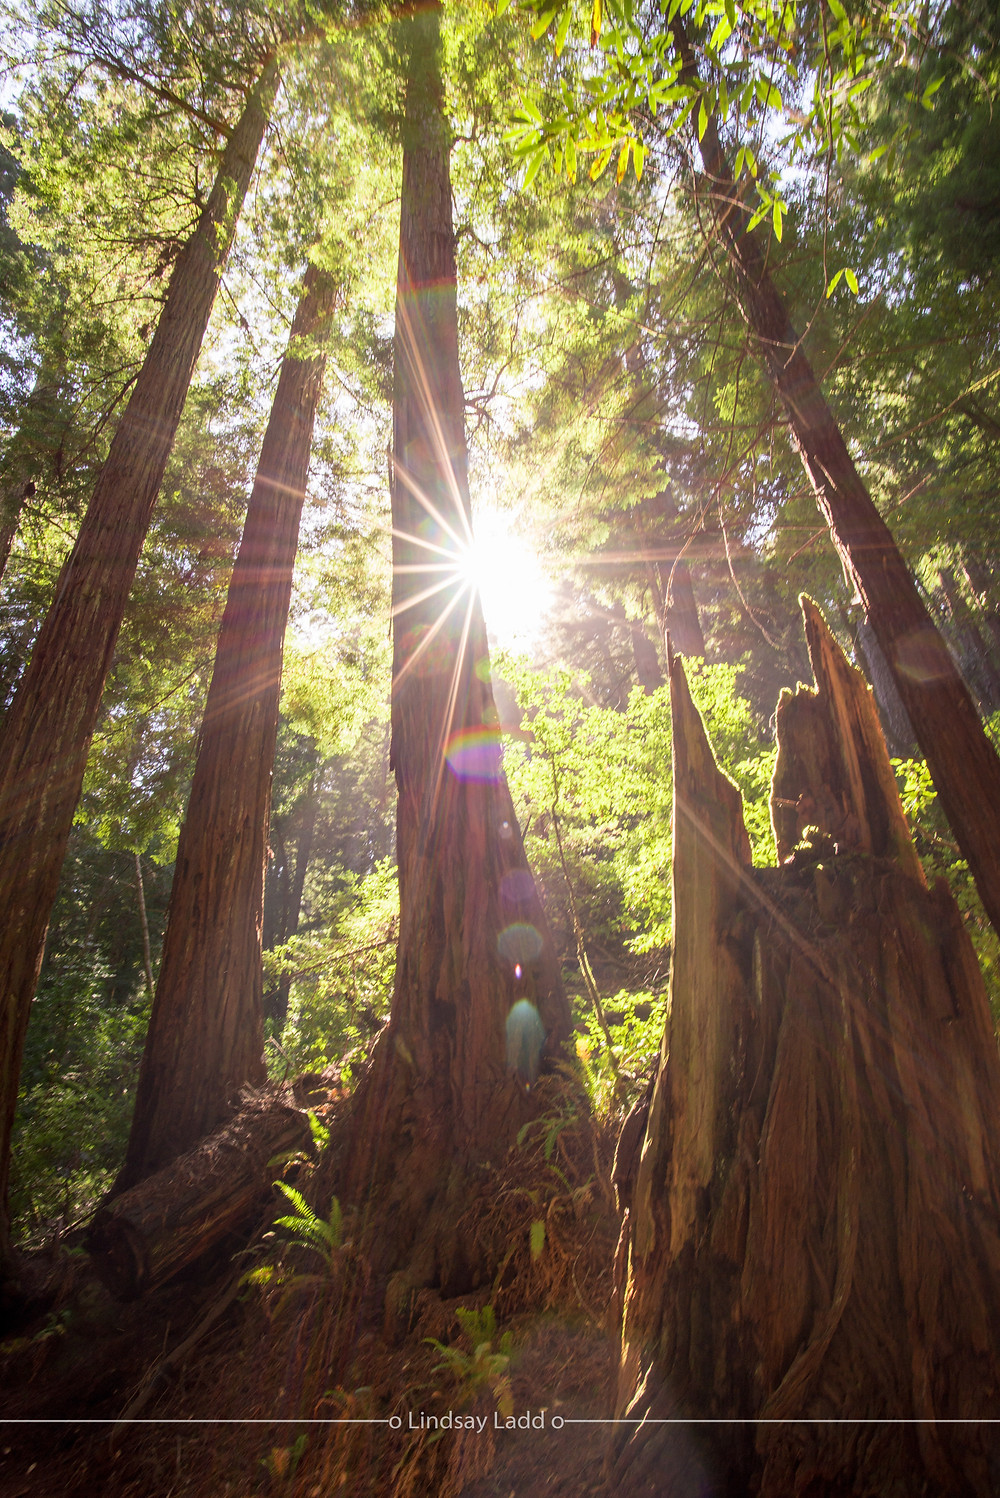 Redwood trees bathed in sunlight